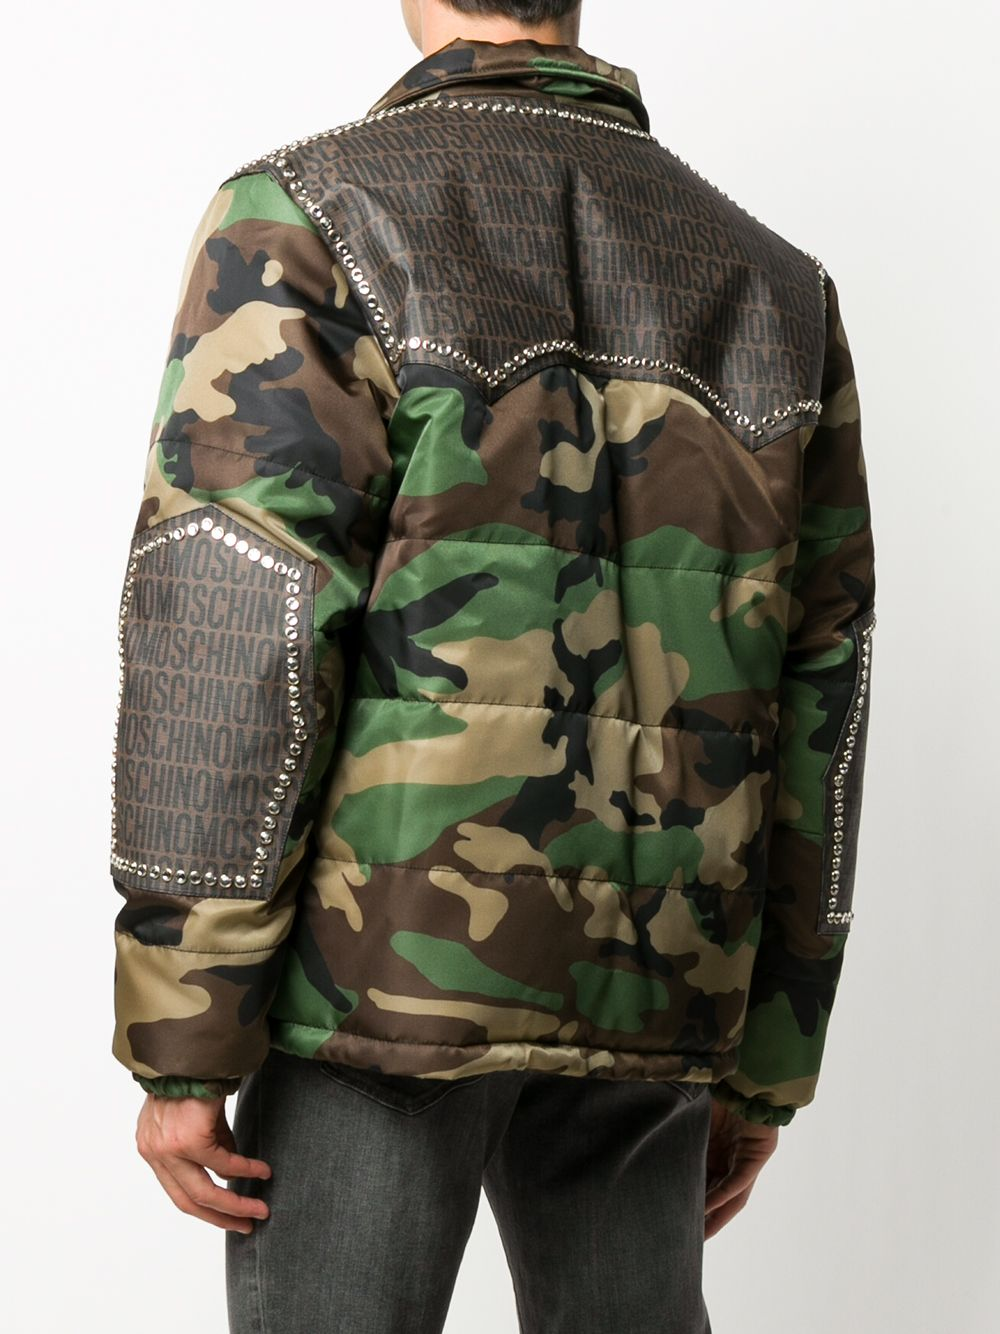 GIACCA CAMOUFLAGE MOSCHINO | Giacca | 06085255A1888